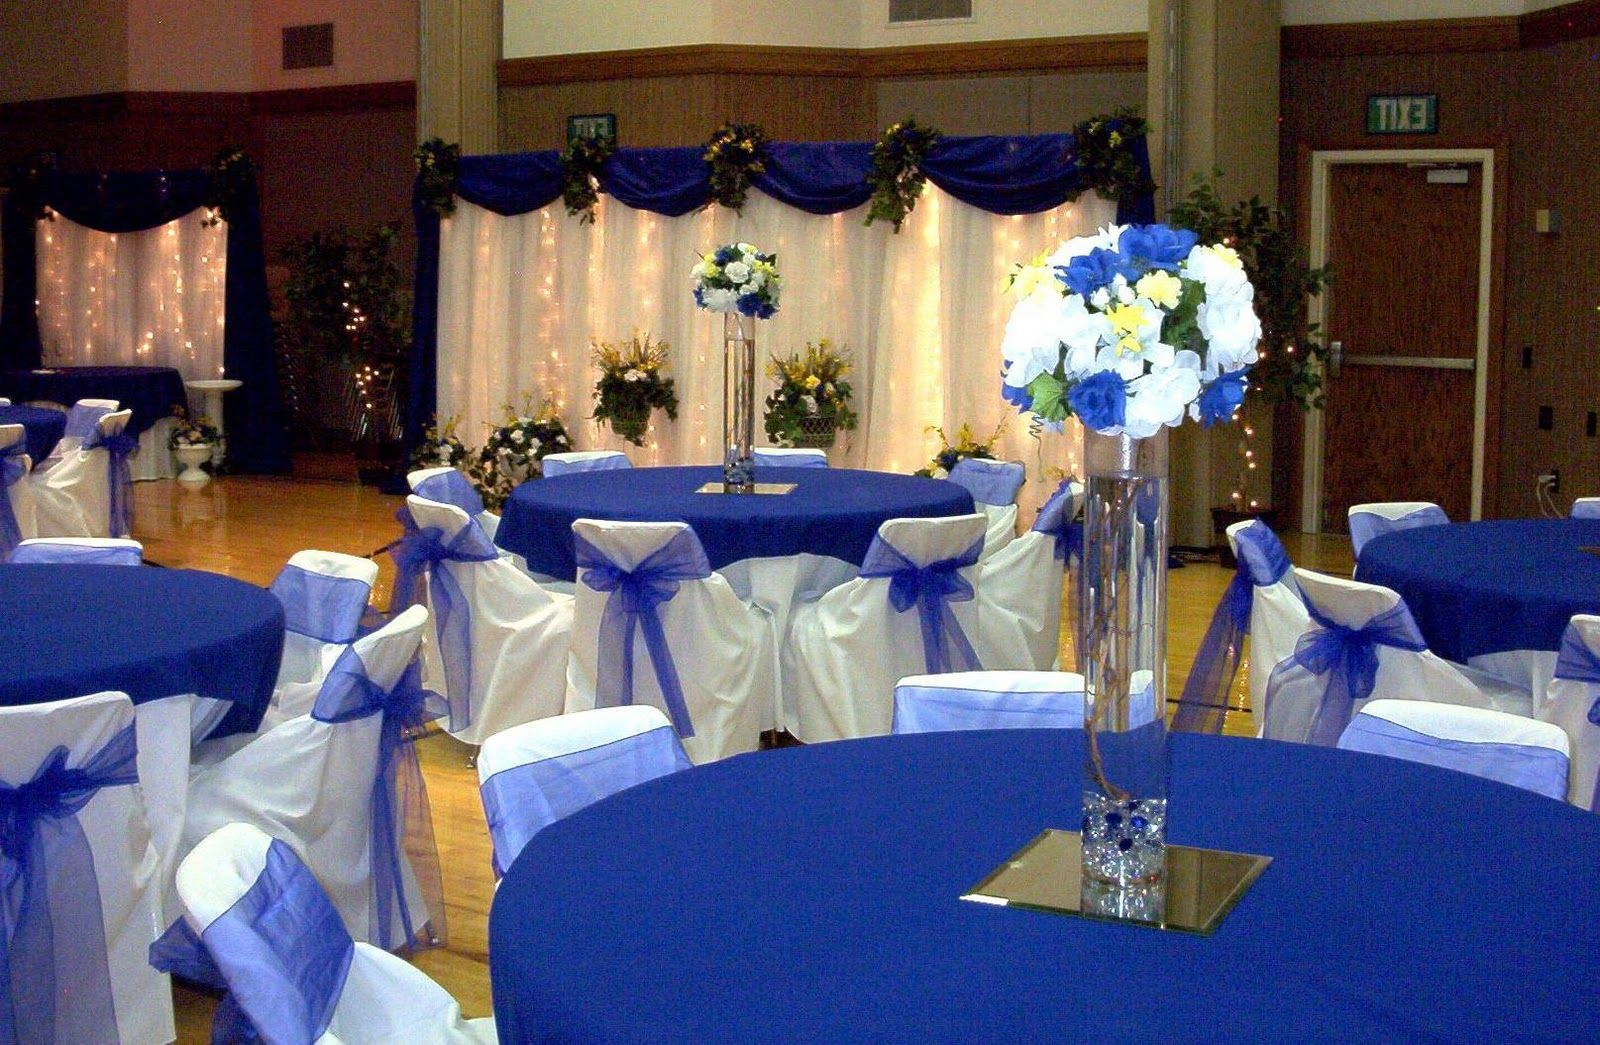 Reception Room Color Scheme Royal Blue White Decoracao De Casamento Azul Casamento Azul Decoracao De Casamento